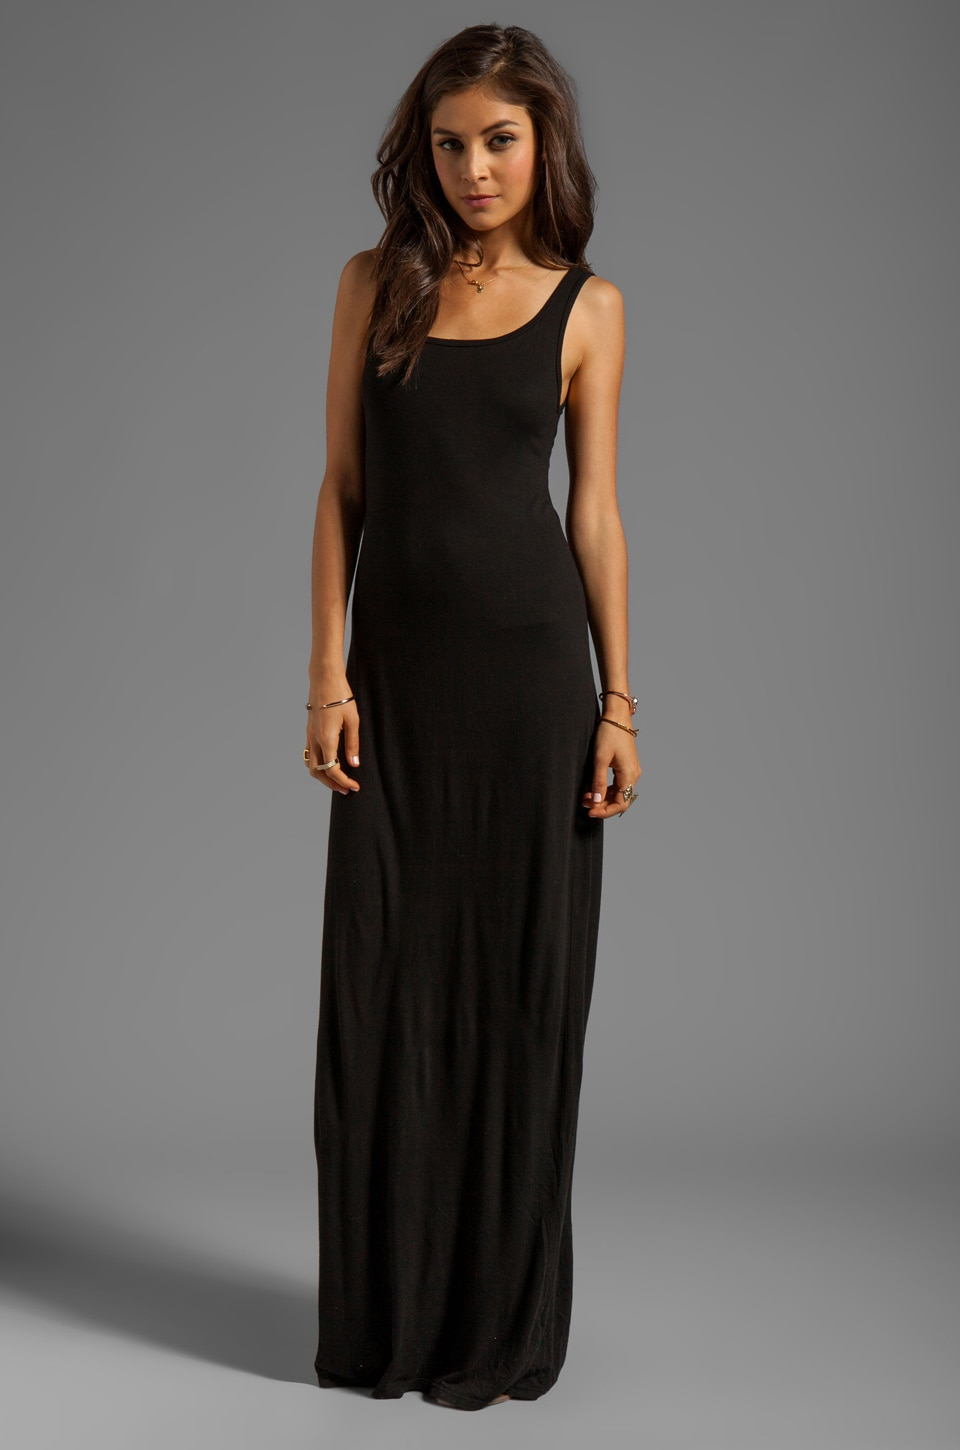 Michael Lauren Edison Long Tank Dress in Black  REVOLVE